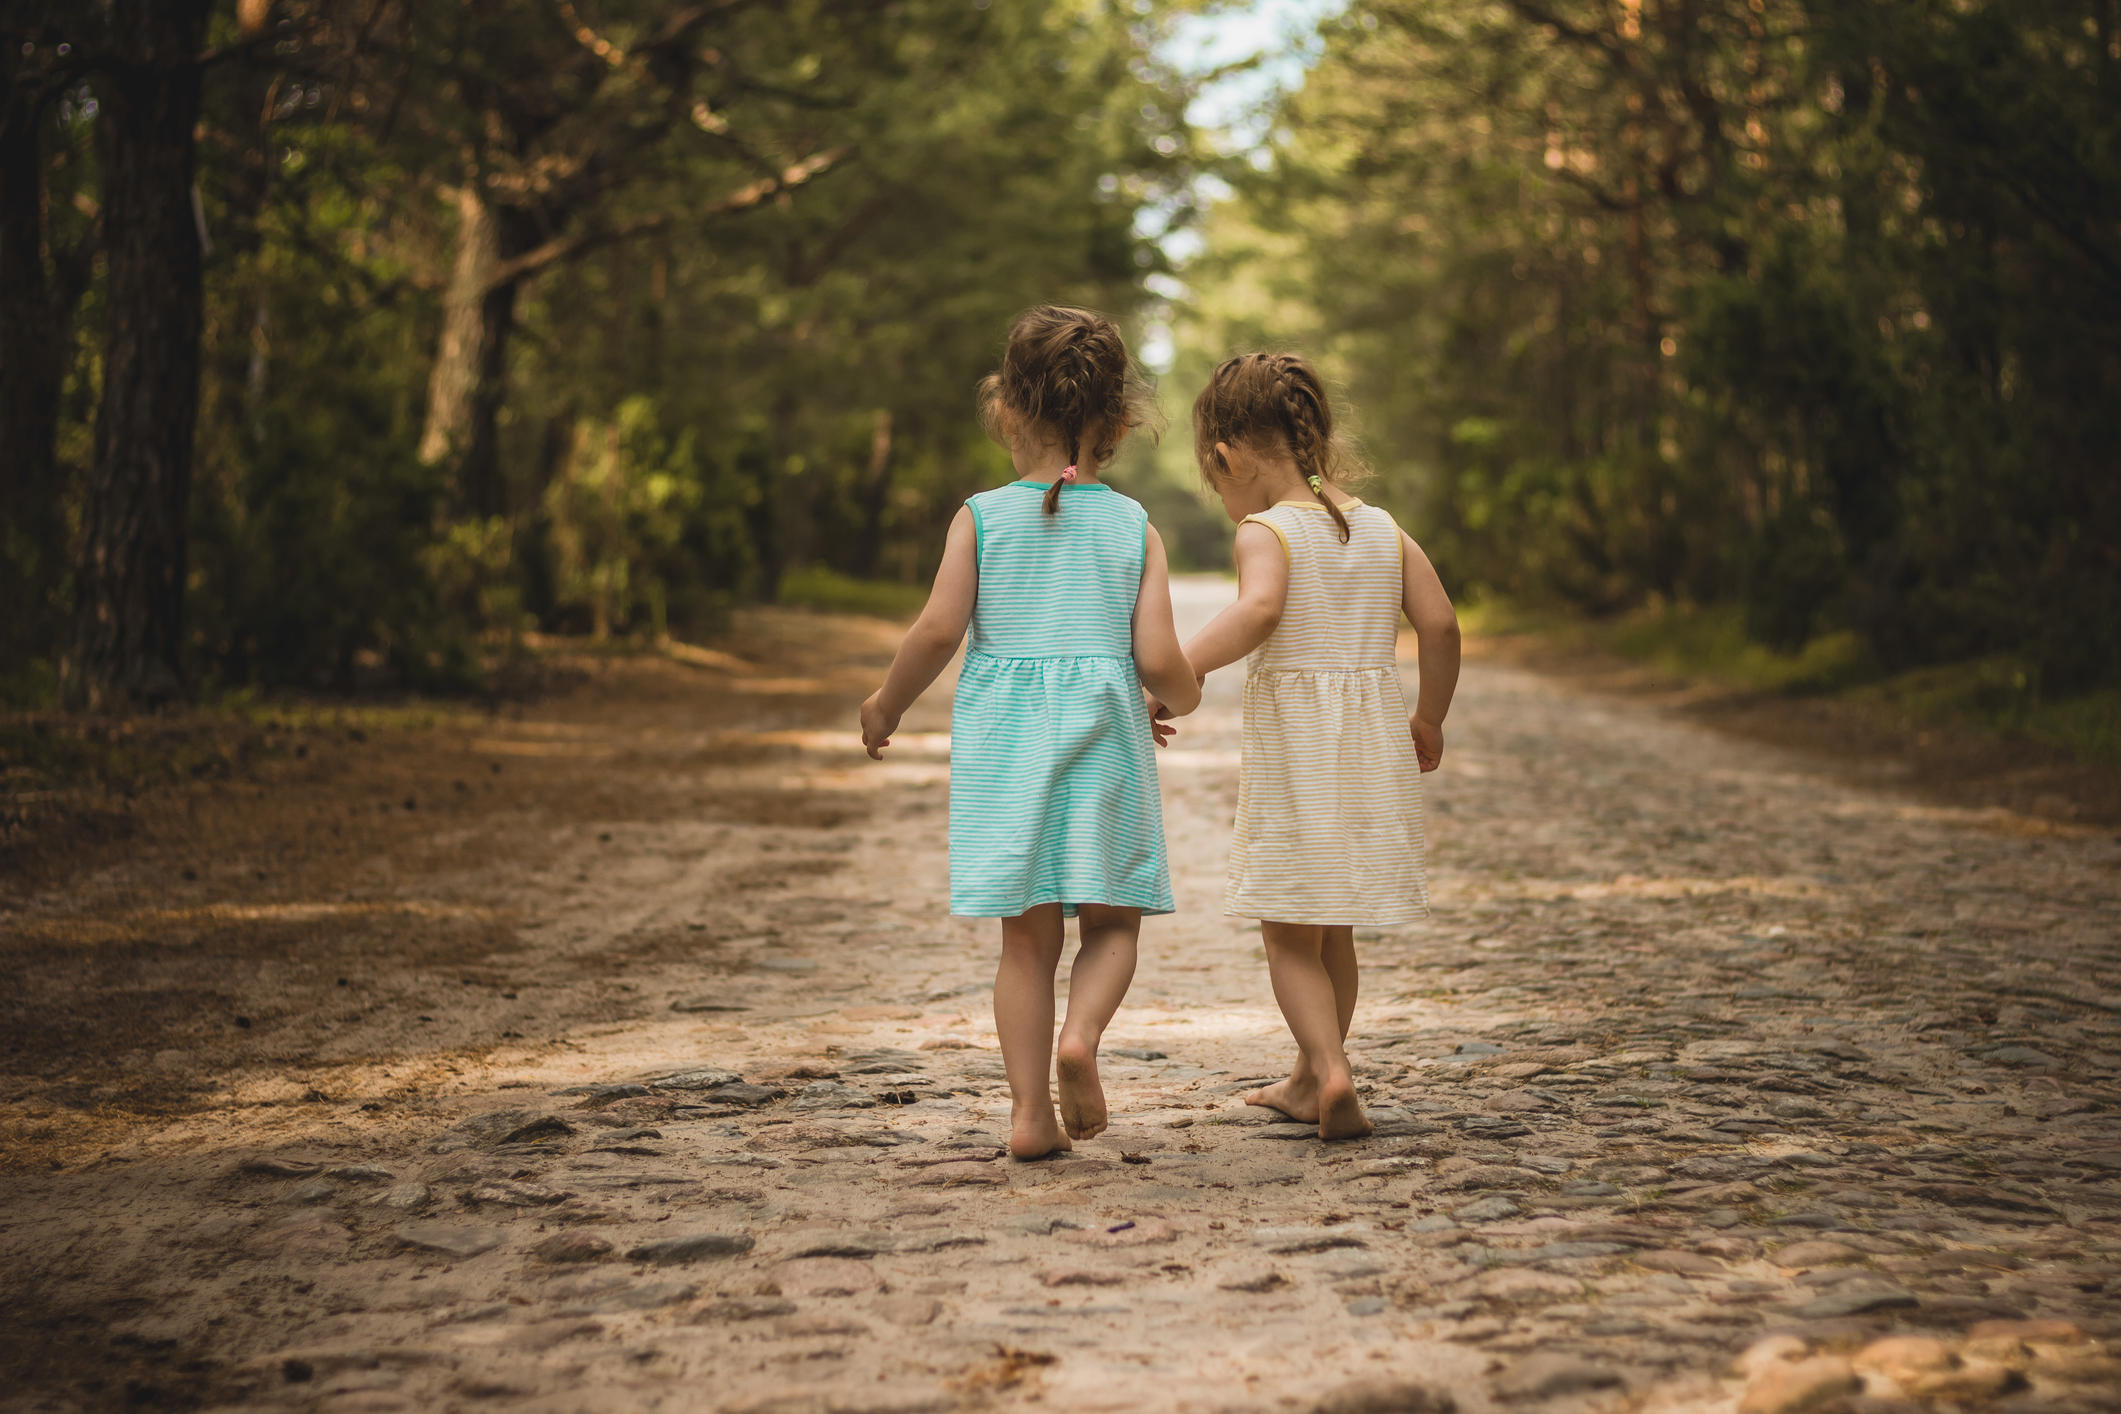 Photo of two cute twins walking along a forest road